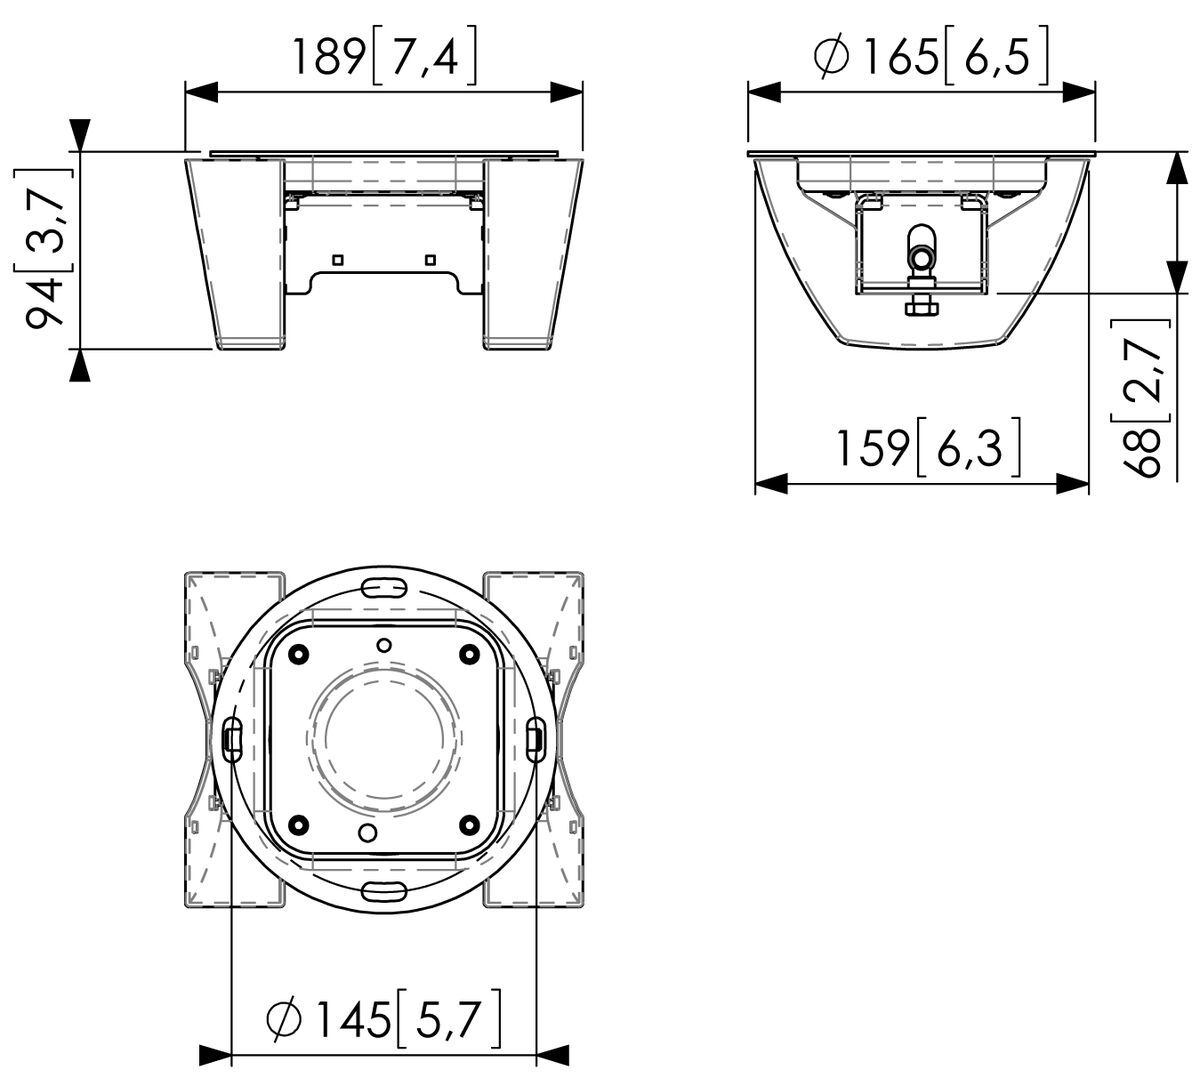 Vogel's PUC 1065 Ceiling plate turn - Dimensions